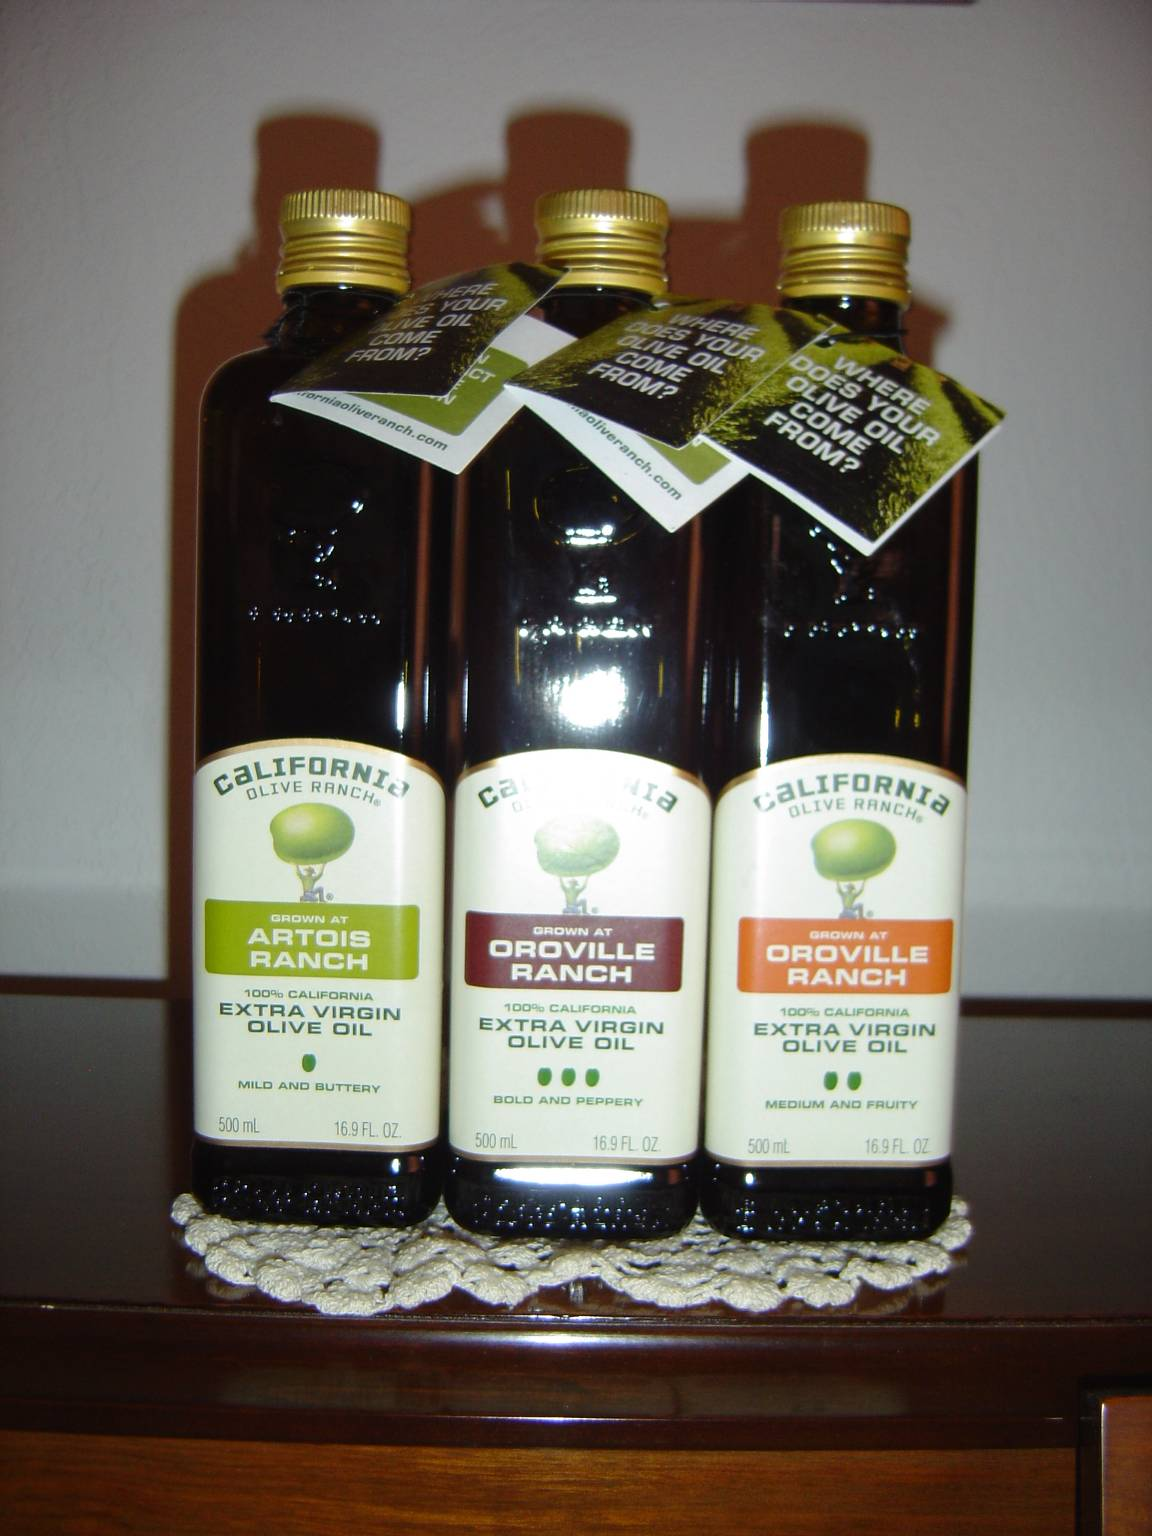 California Olive Ranch Select Extra Virgin Olive Oils